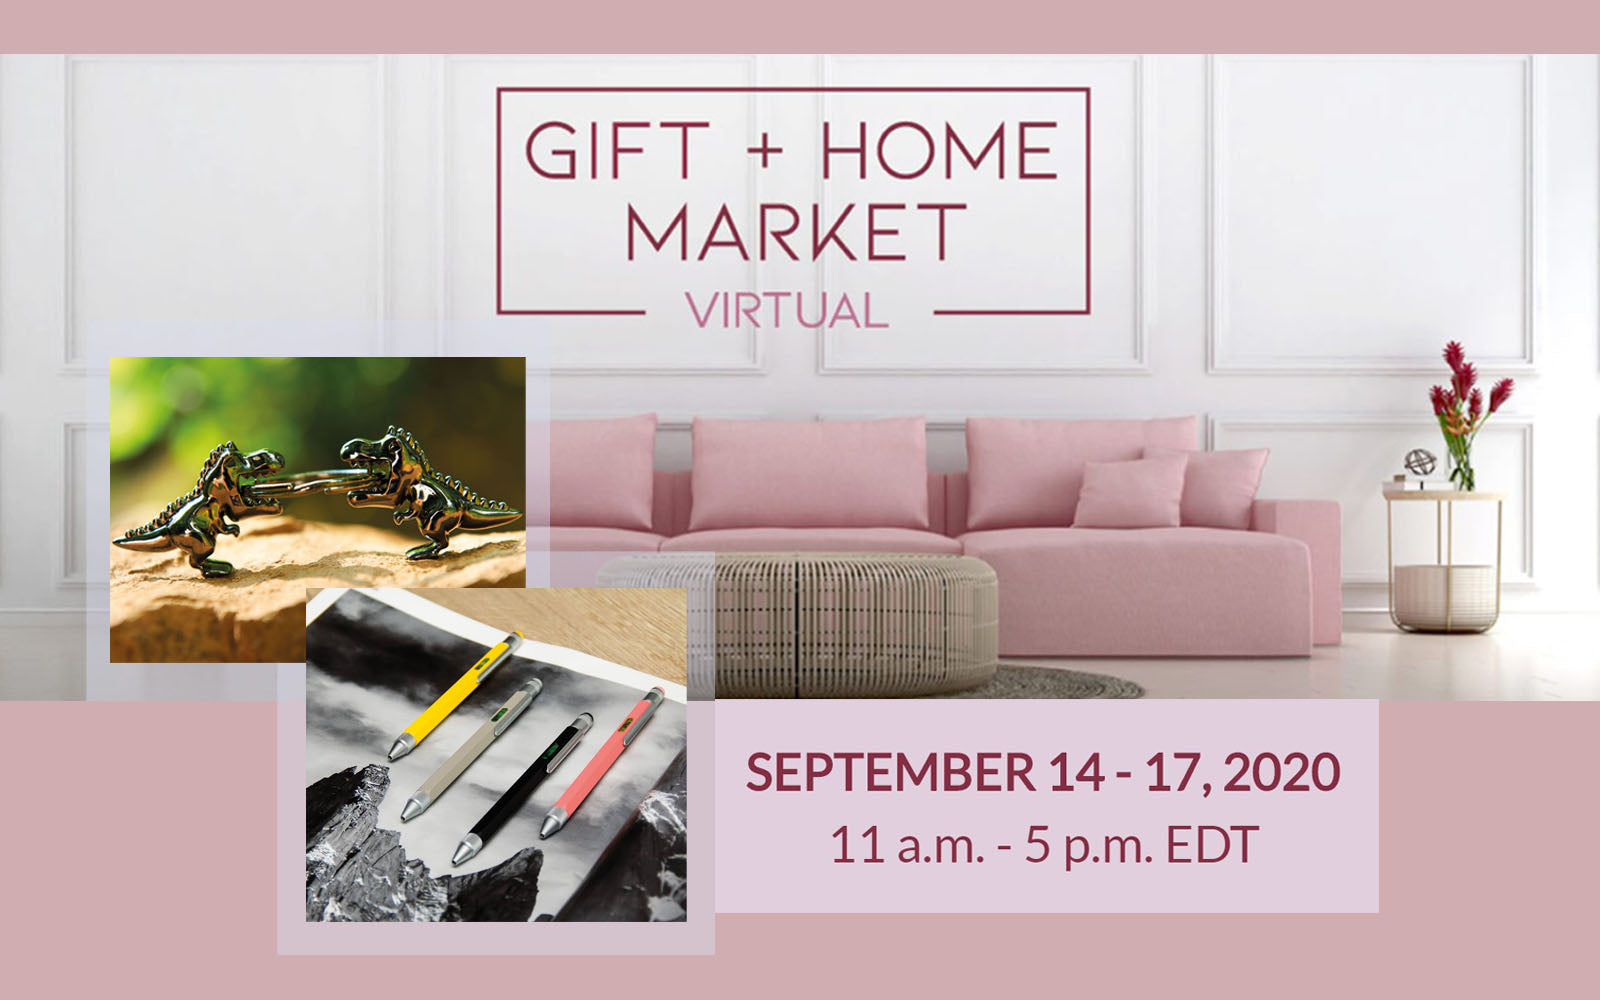 FIND US AT THE VIRTUAL TORONTO GIFT + HOME MARKET!